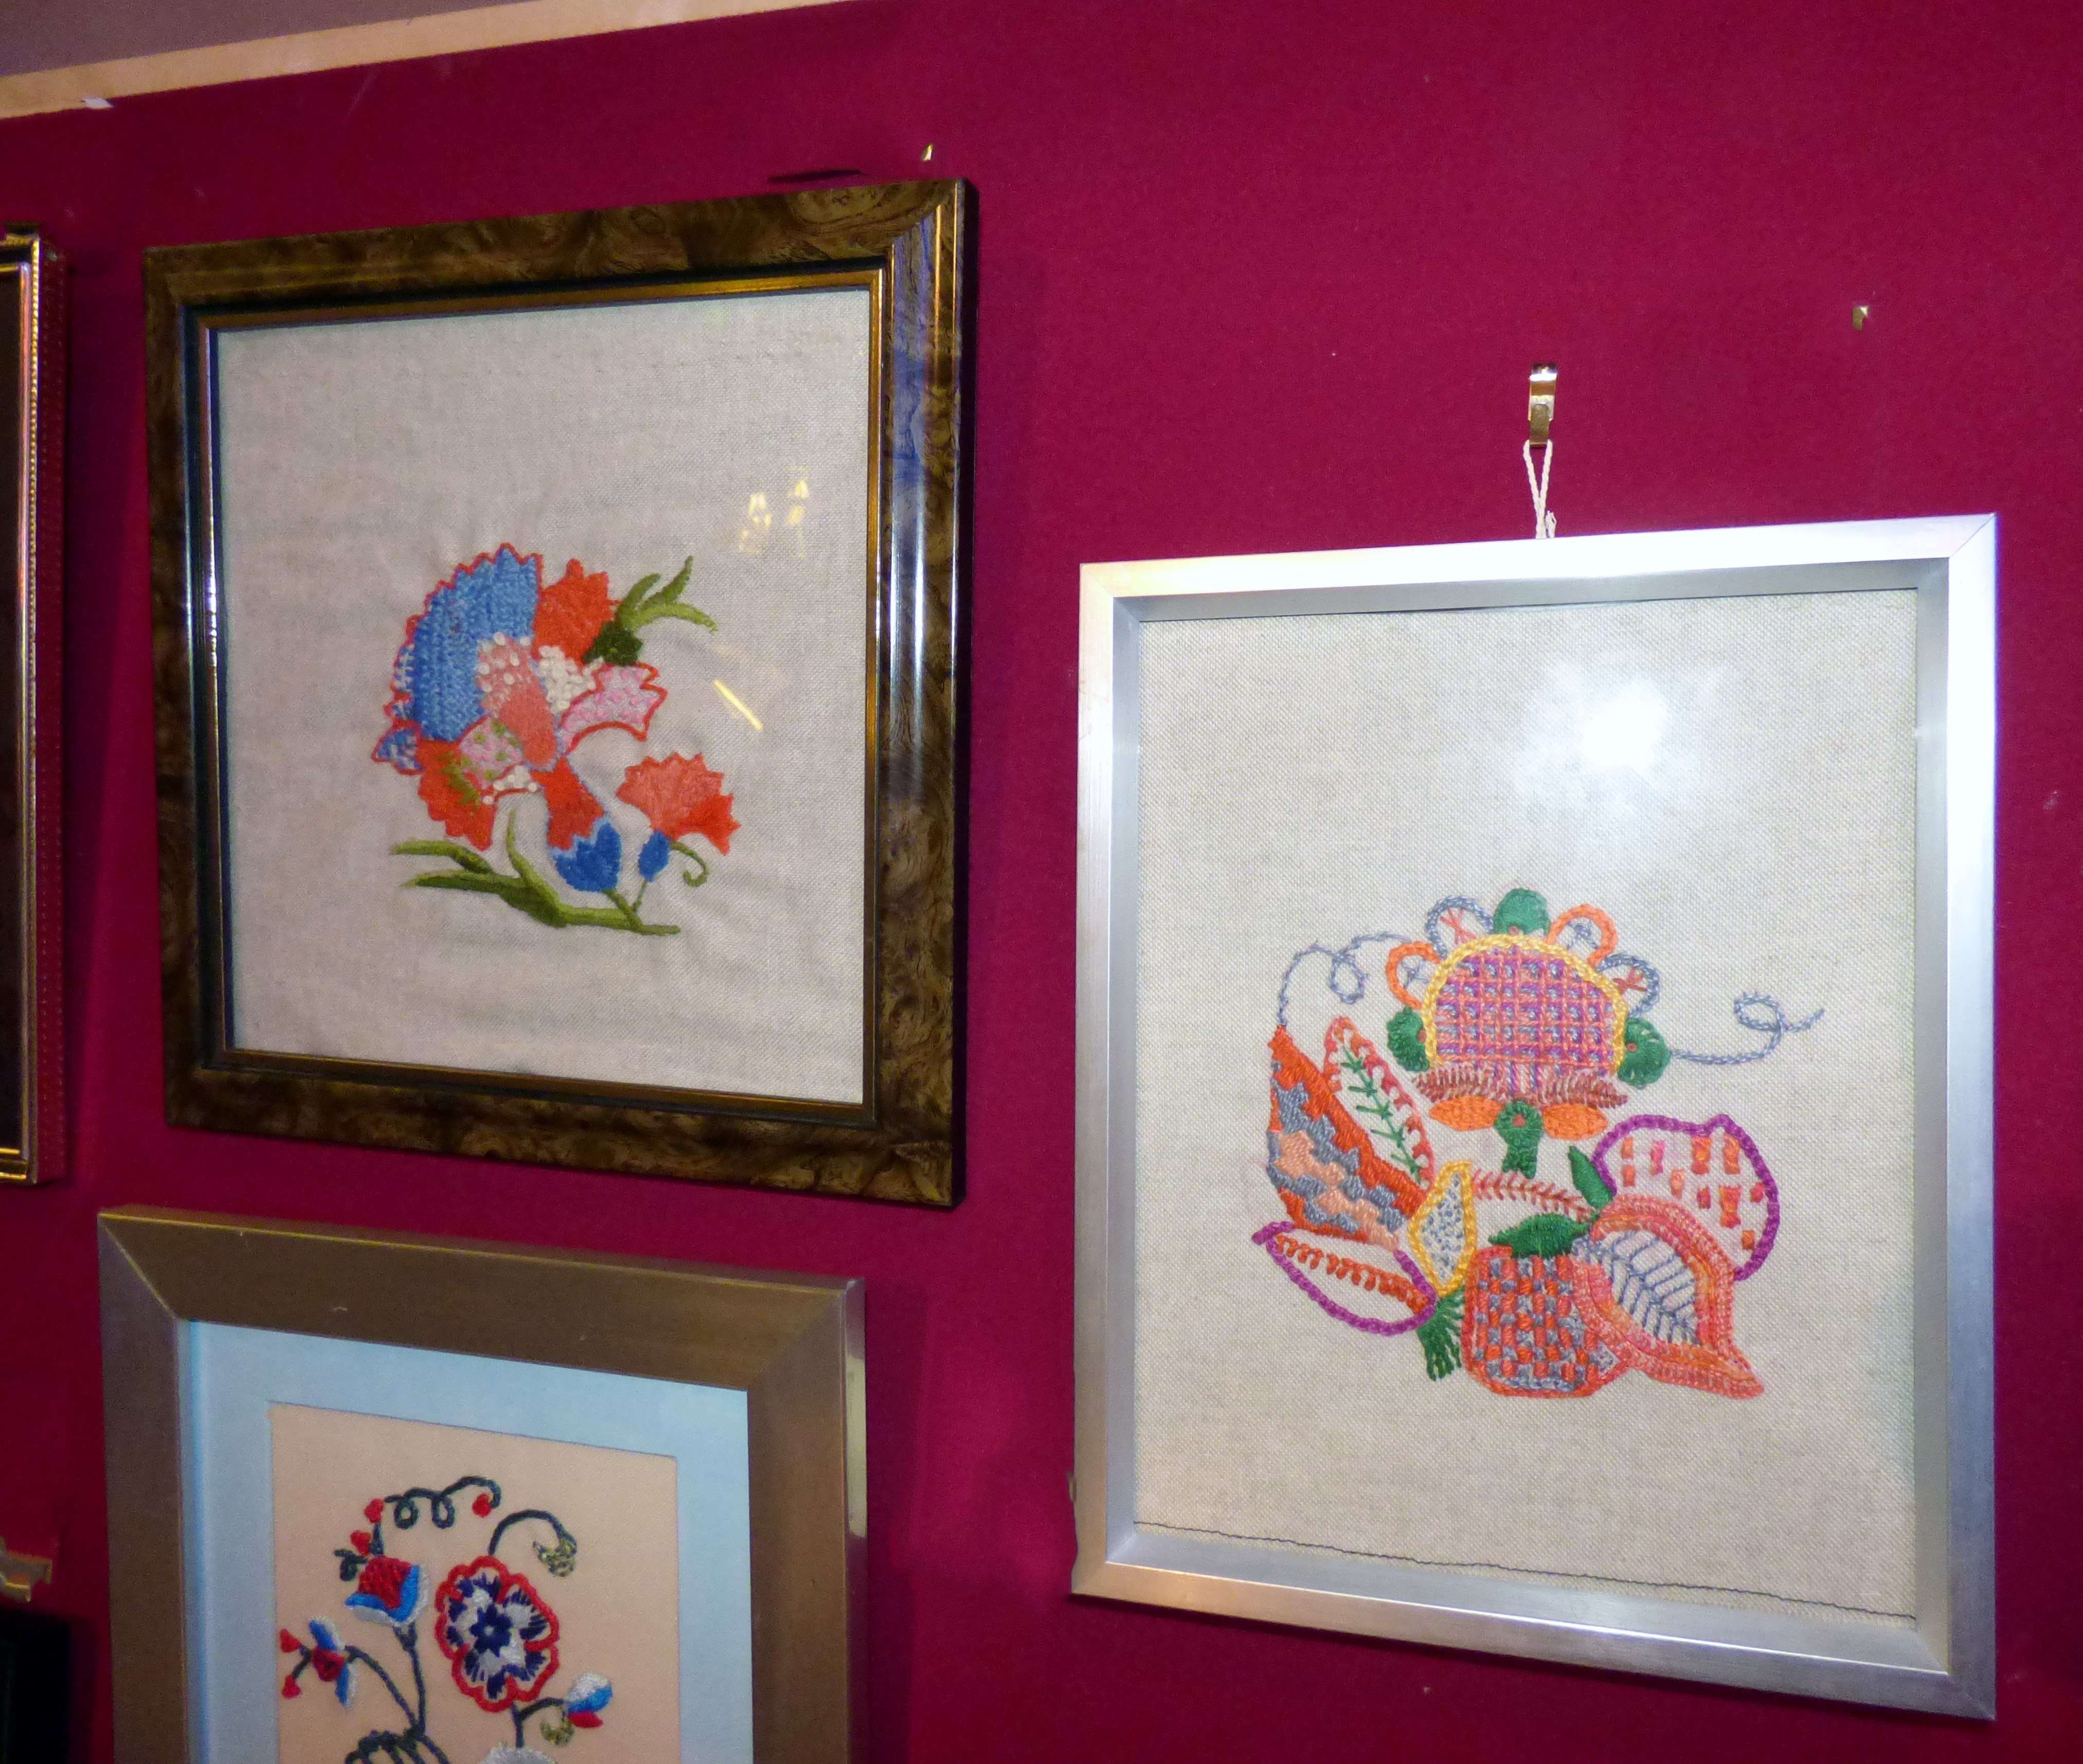 CREWELWORK by F.Trotman, CREWELWORK by A.Kefford and CREWELWORK by K.Green, at Embroidery for Pleasure exhibition, Liverpool Metropolitan Cathedral 2016